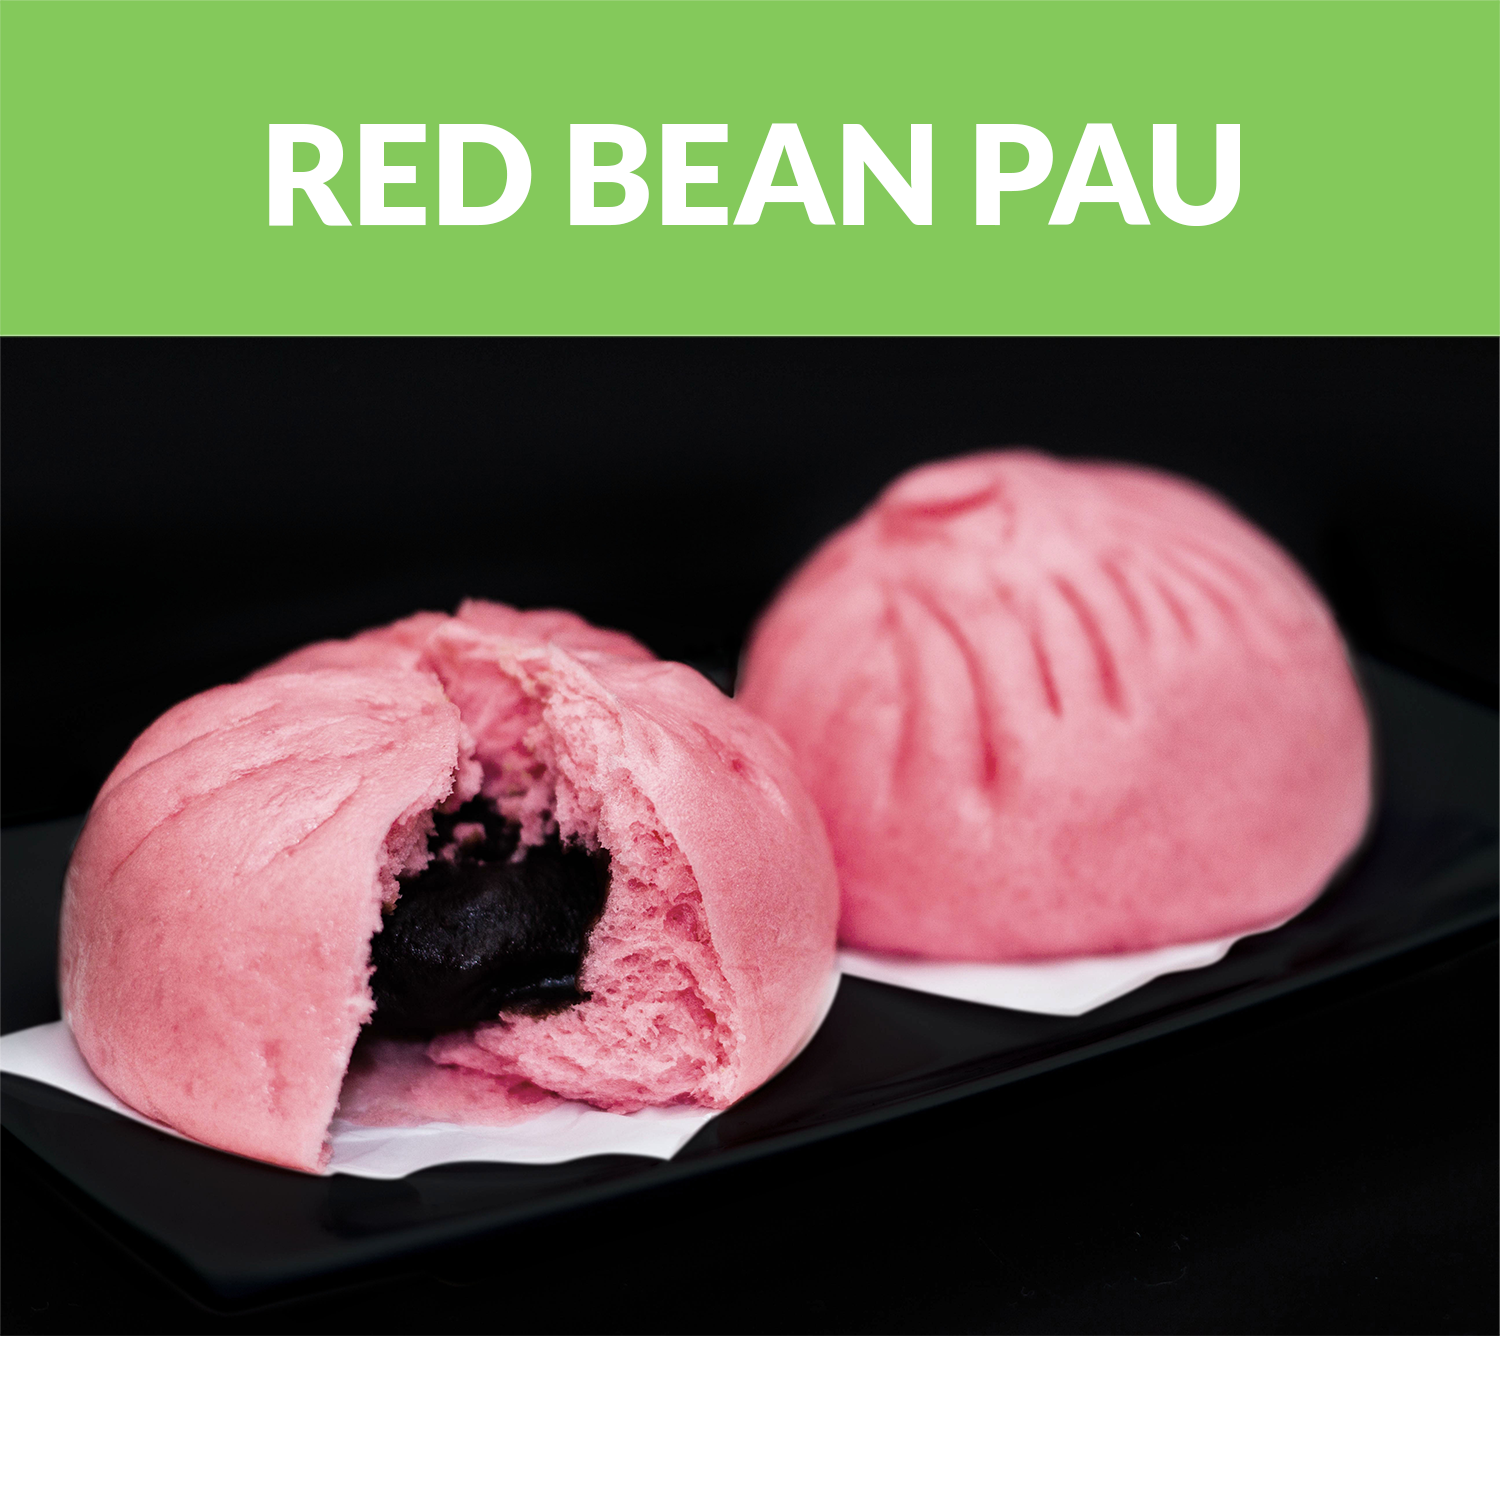 Products-Paus-Red-Bean-Pau.png